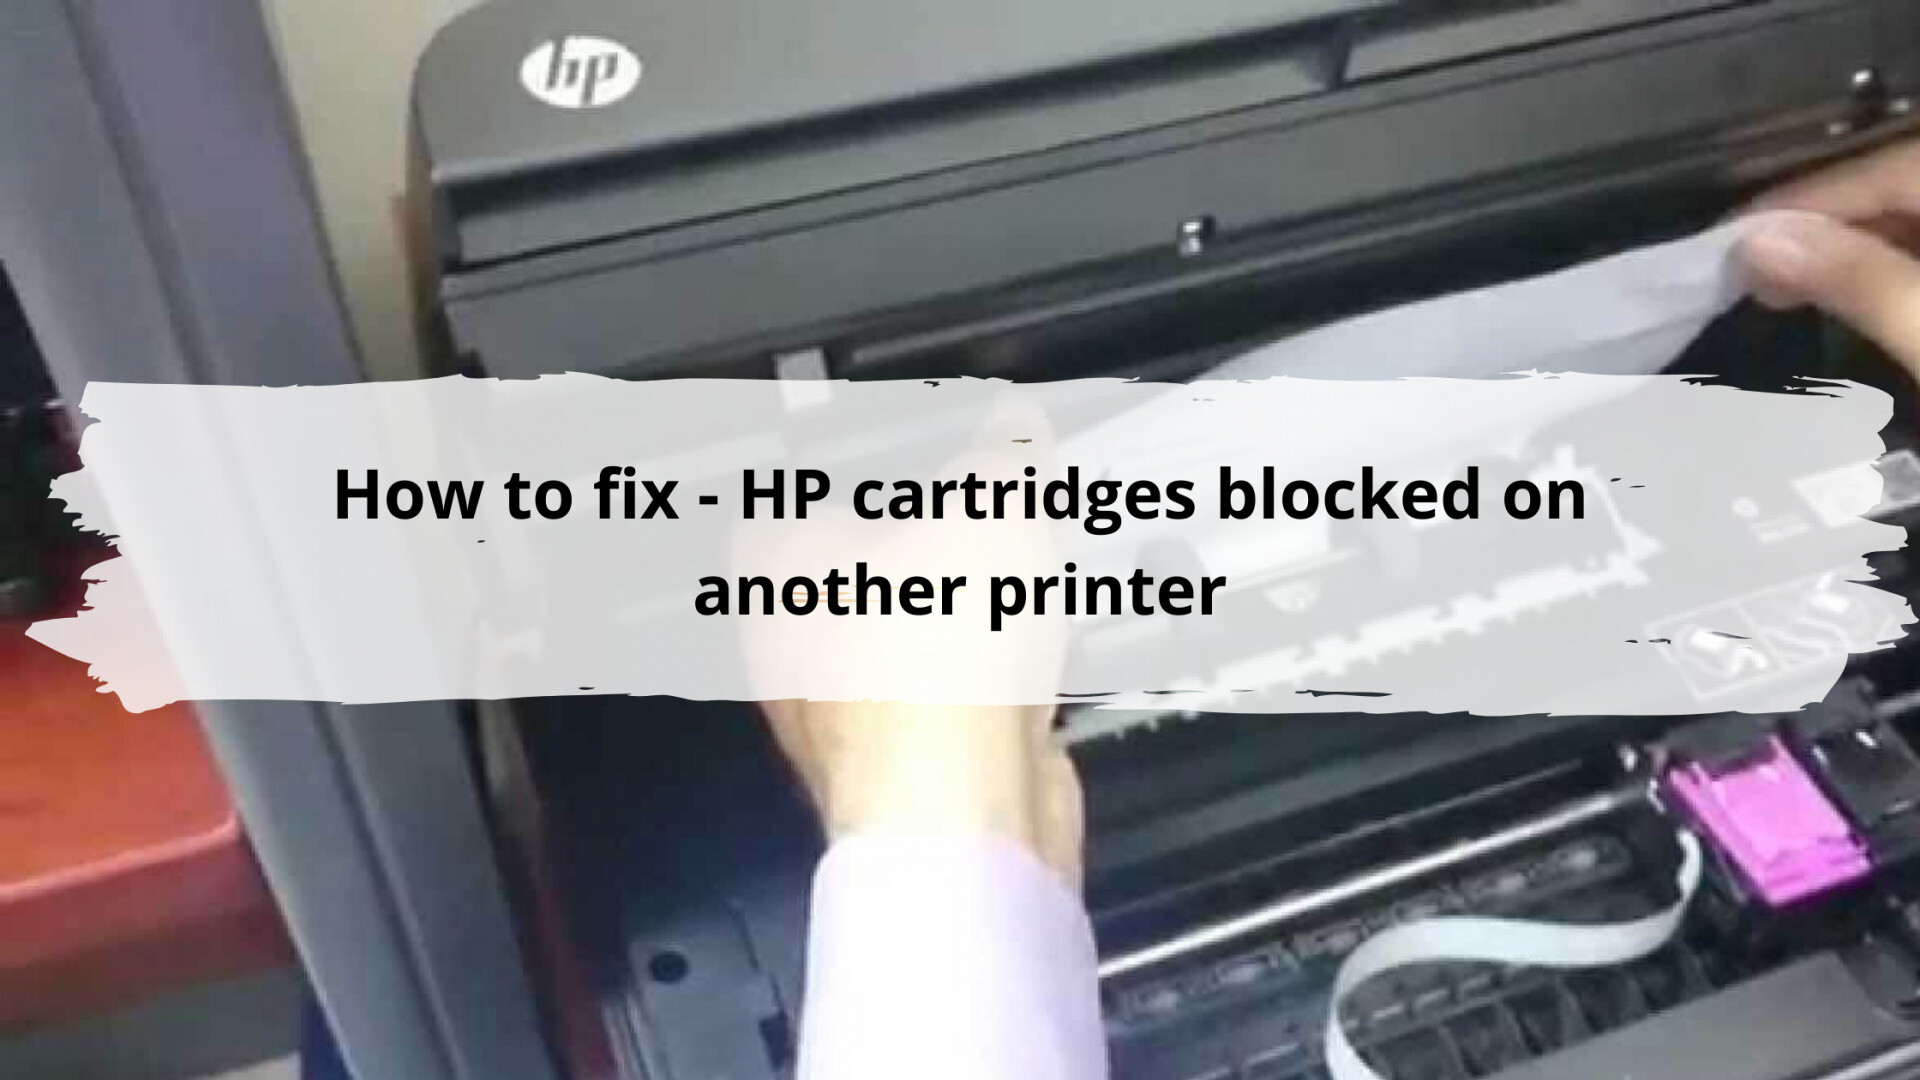 How to fix - HP cartridges blocked on another printer